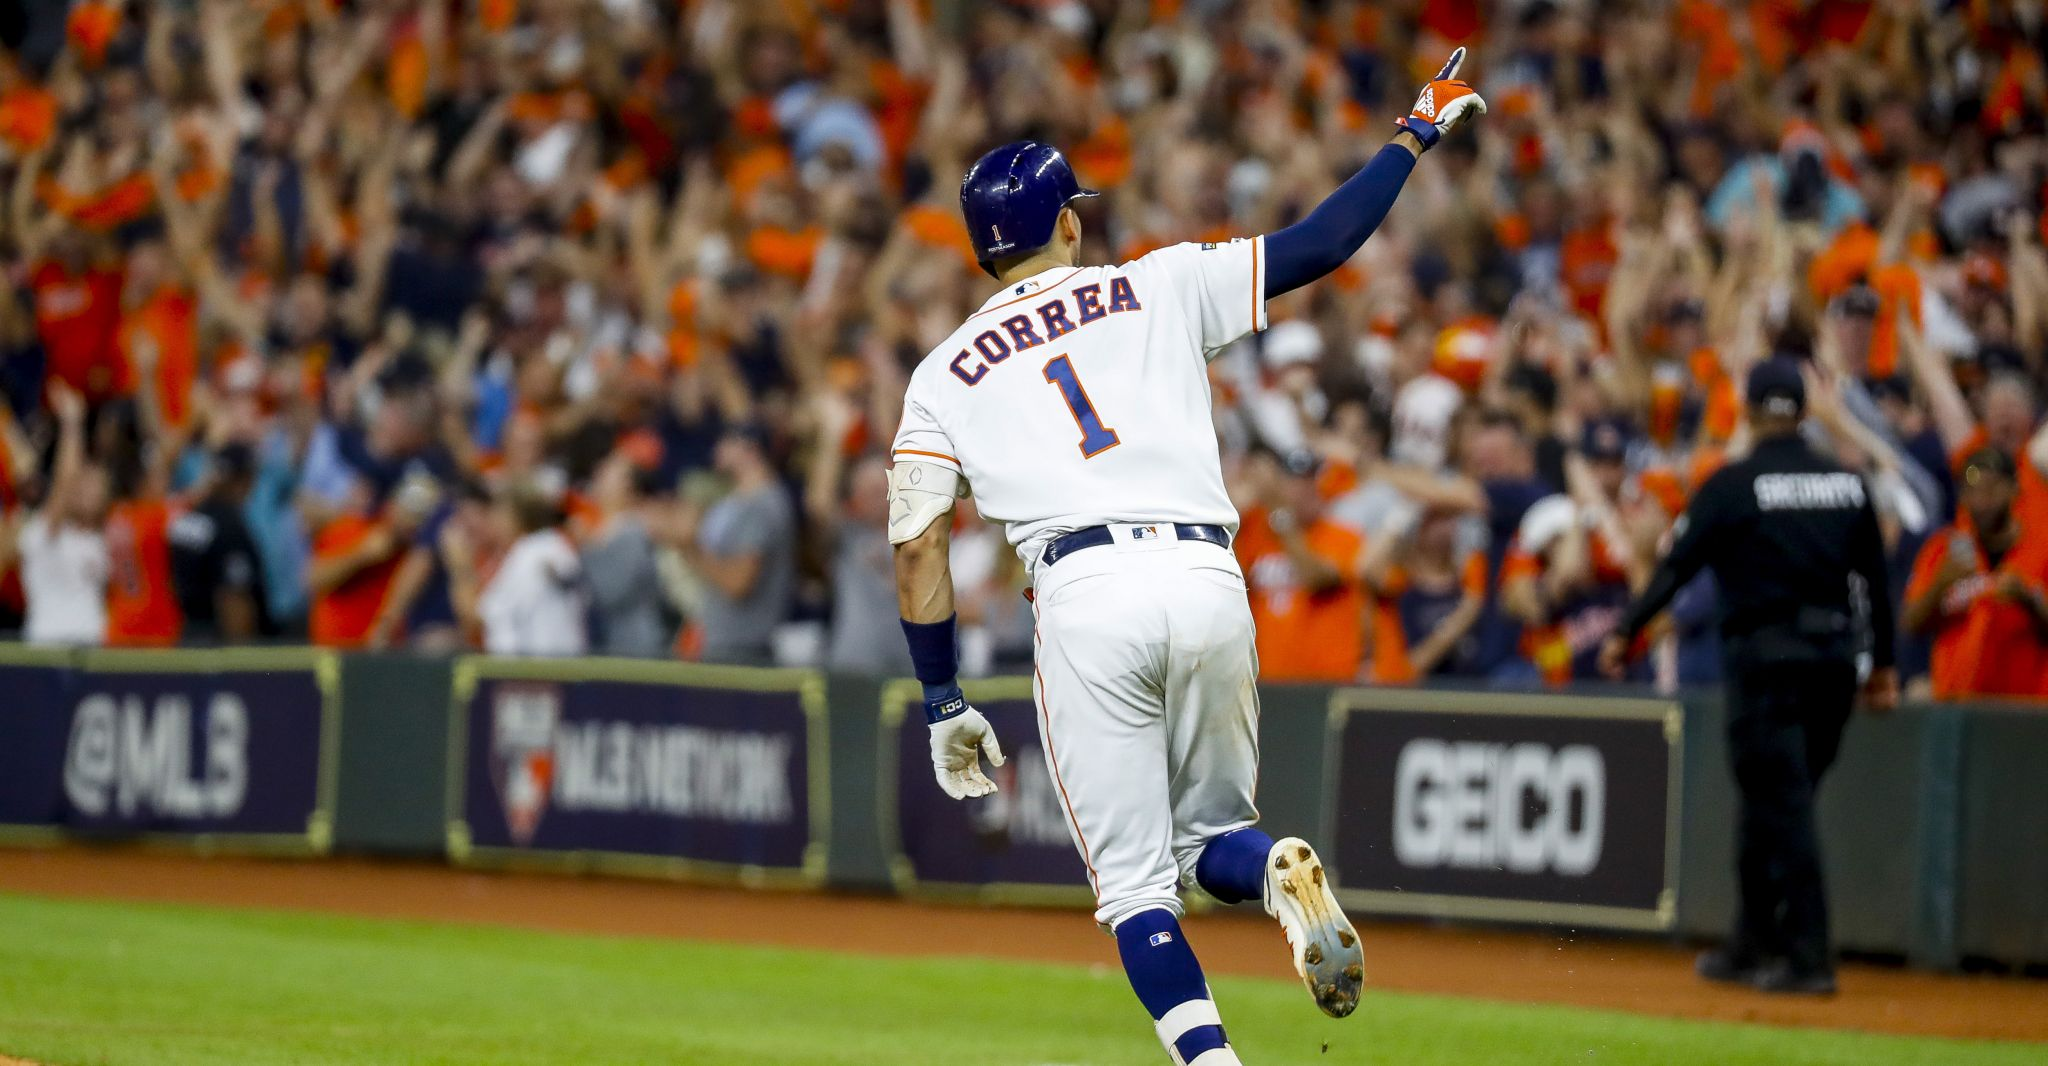 A Carlos Correa homer changes series for Astros